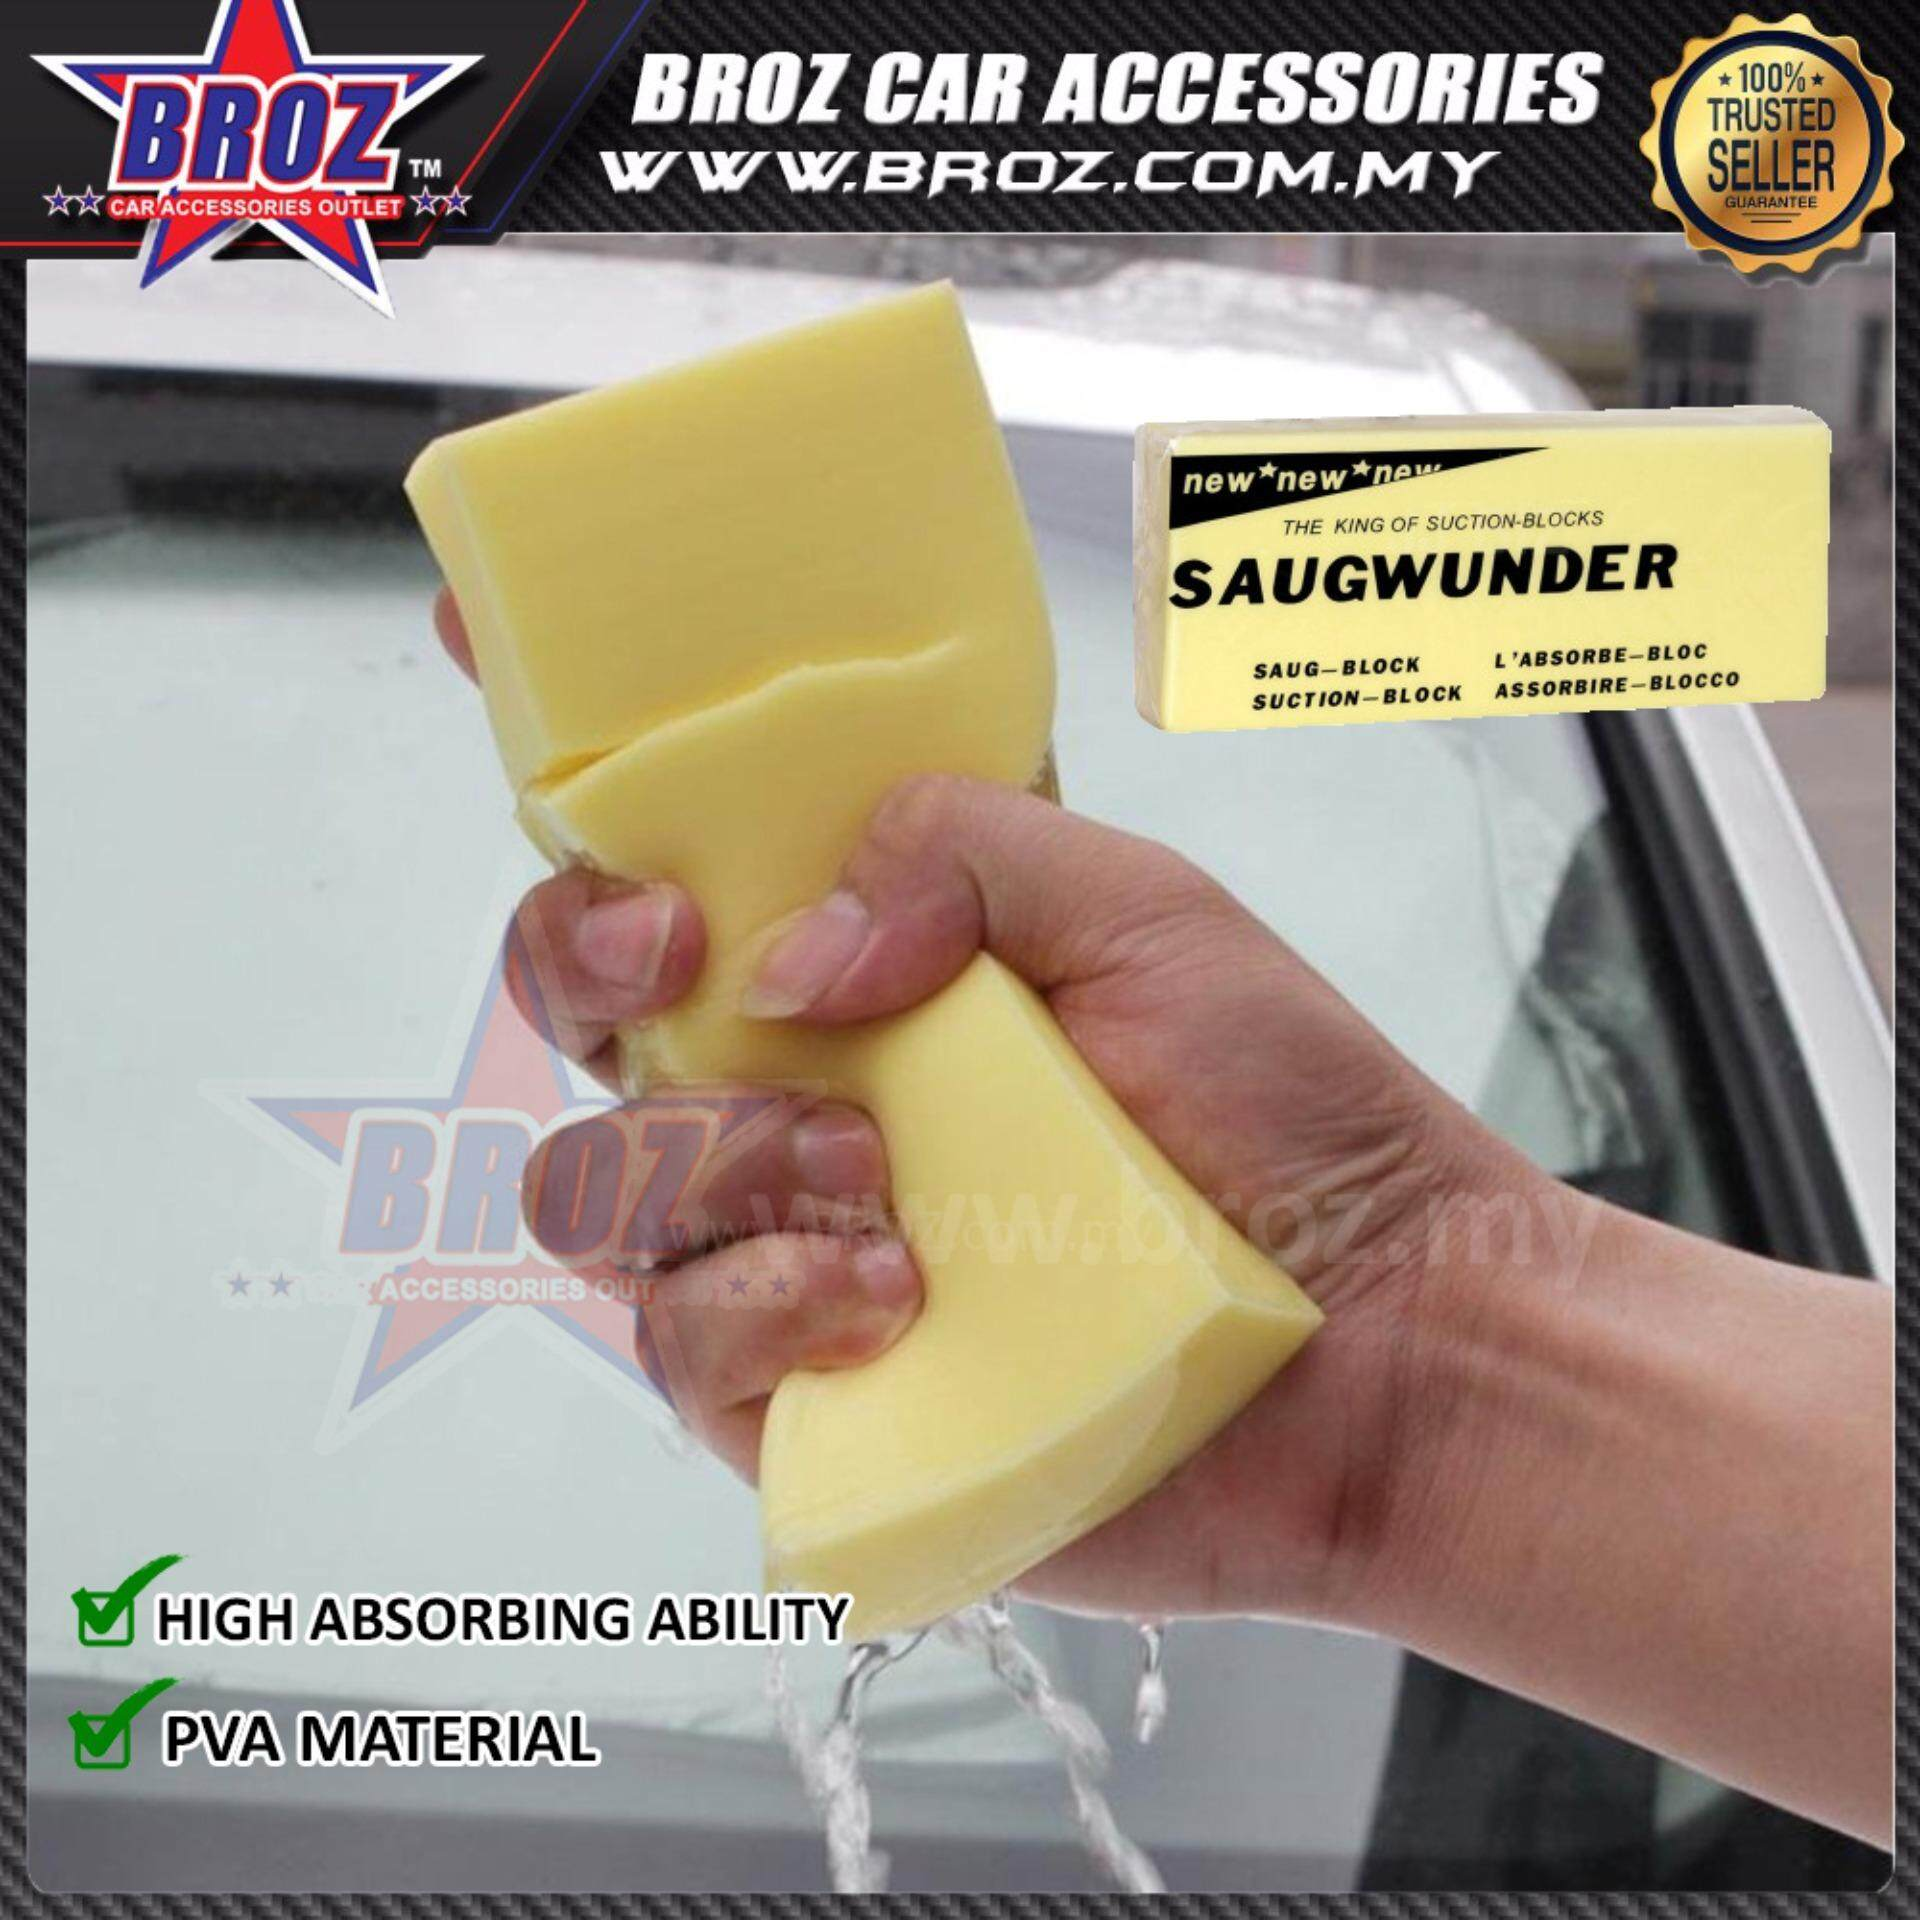 Broz SAUGWUNDER PVA Absorbent Sponge Car Washing Tool Magic Sponge (Yellow)